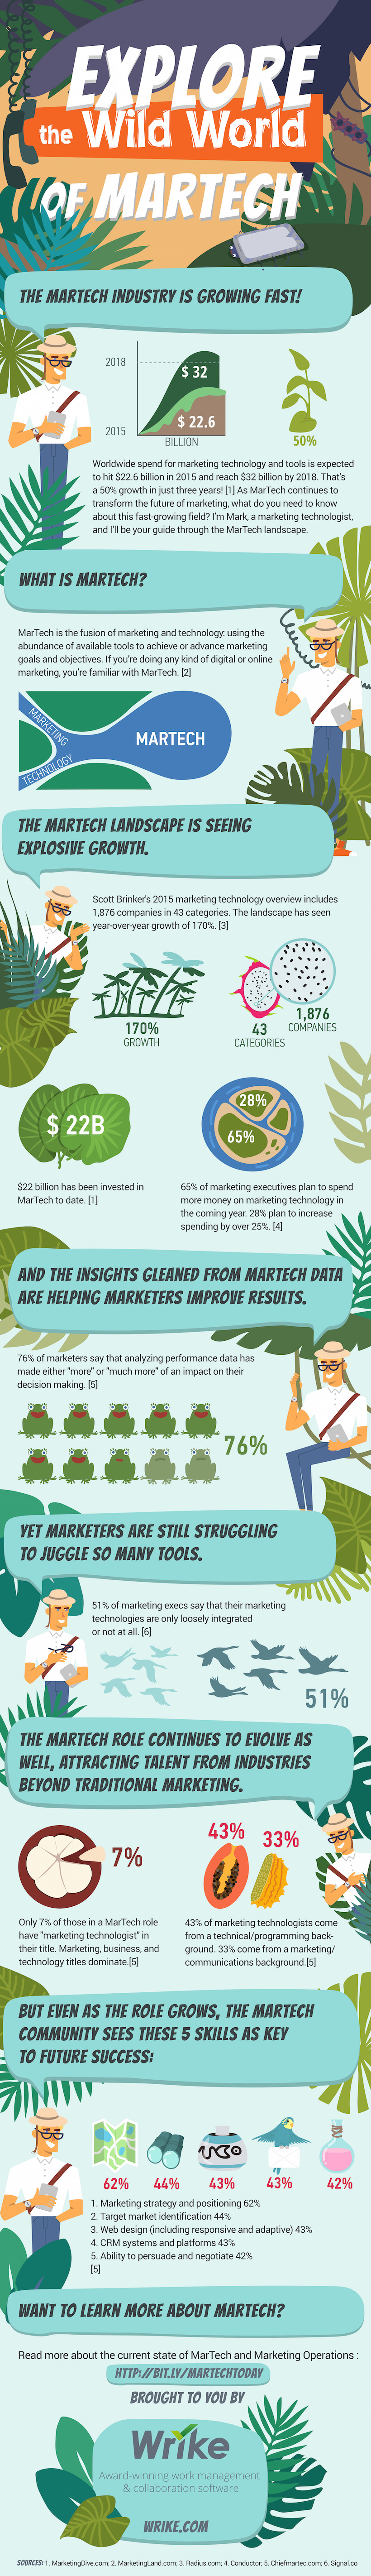 The Guide to MarTech Today (#Infographic)